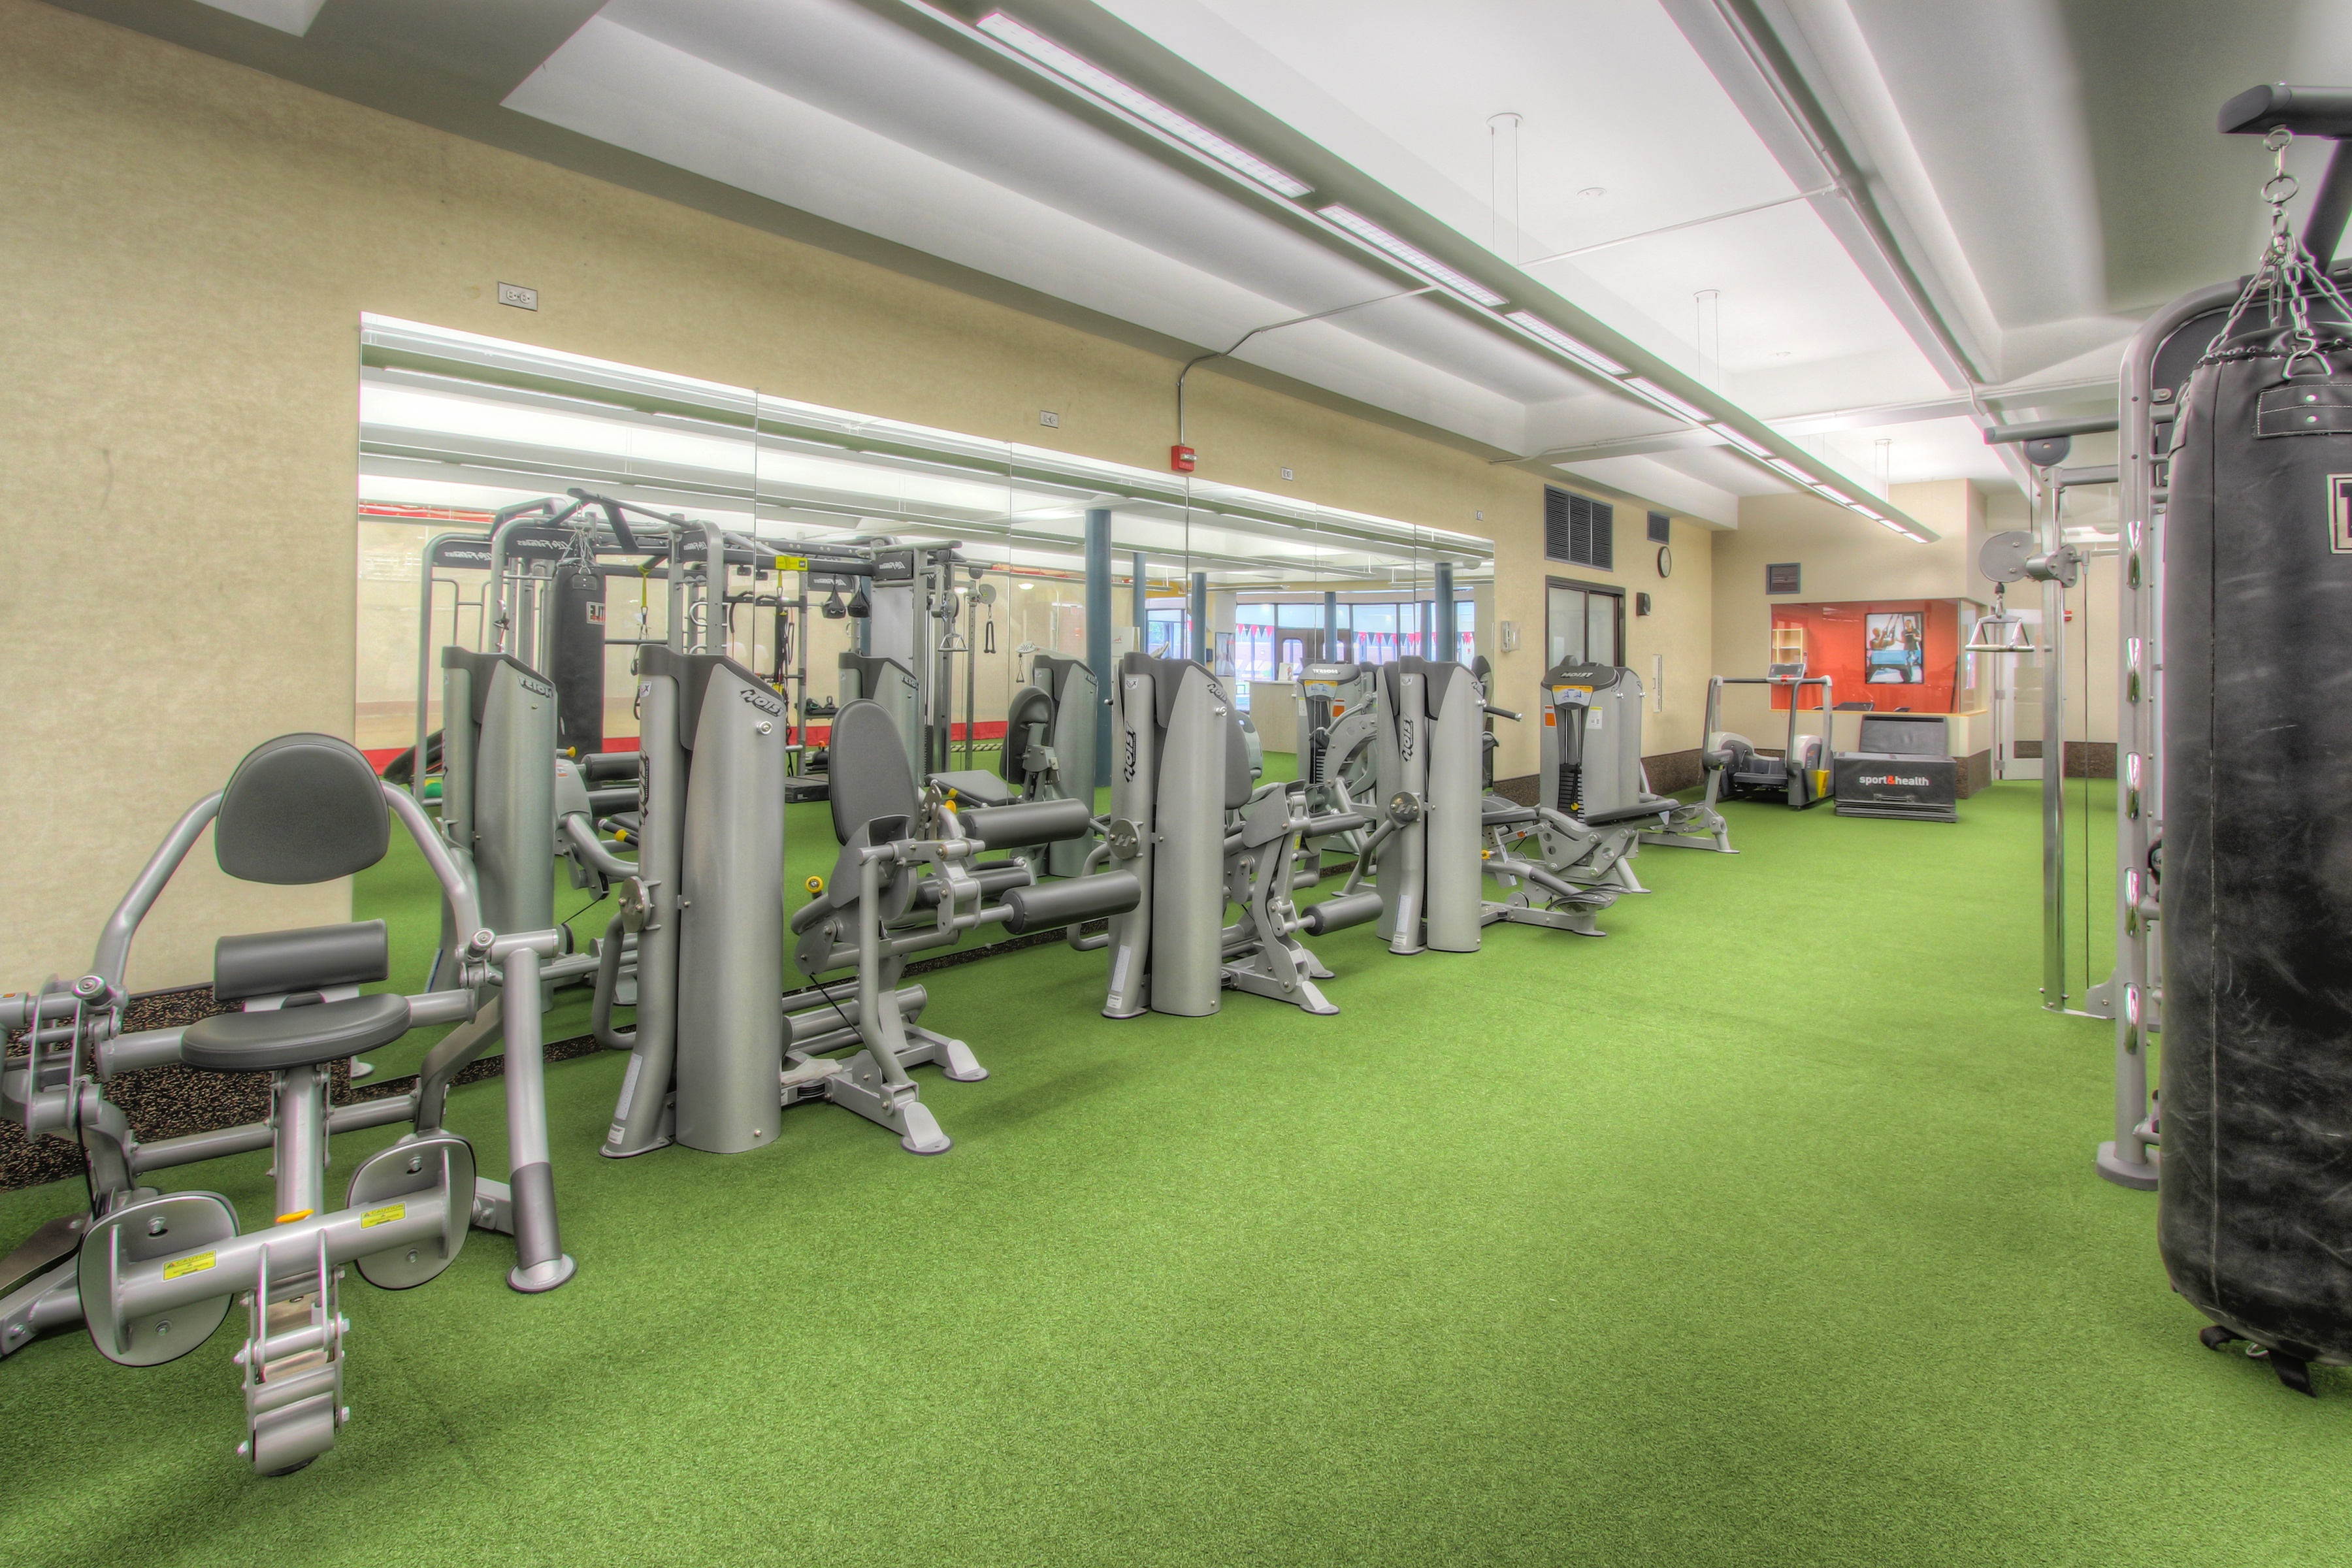 Workout/Turf Area